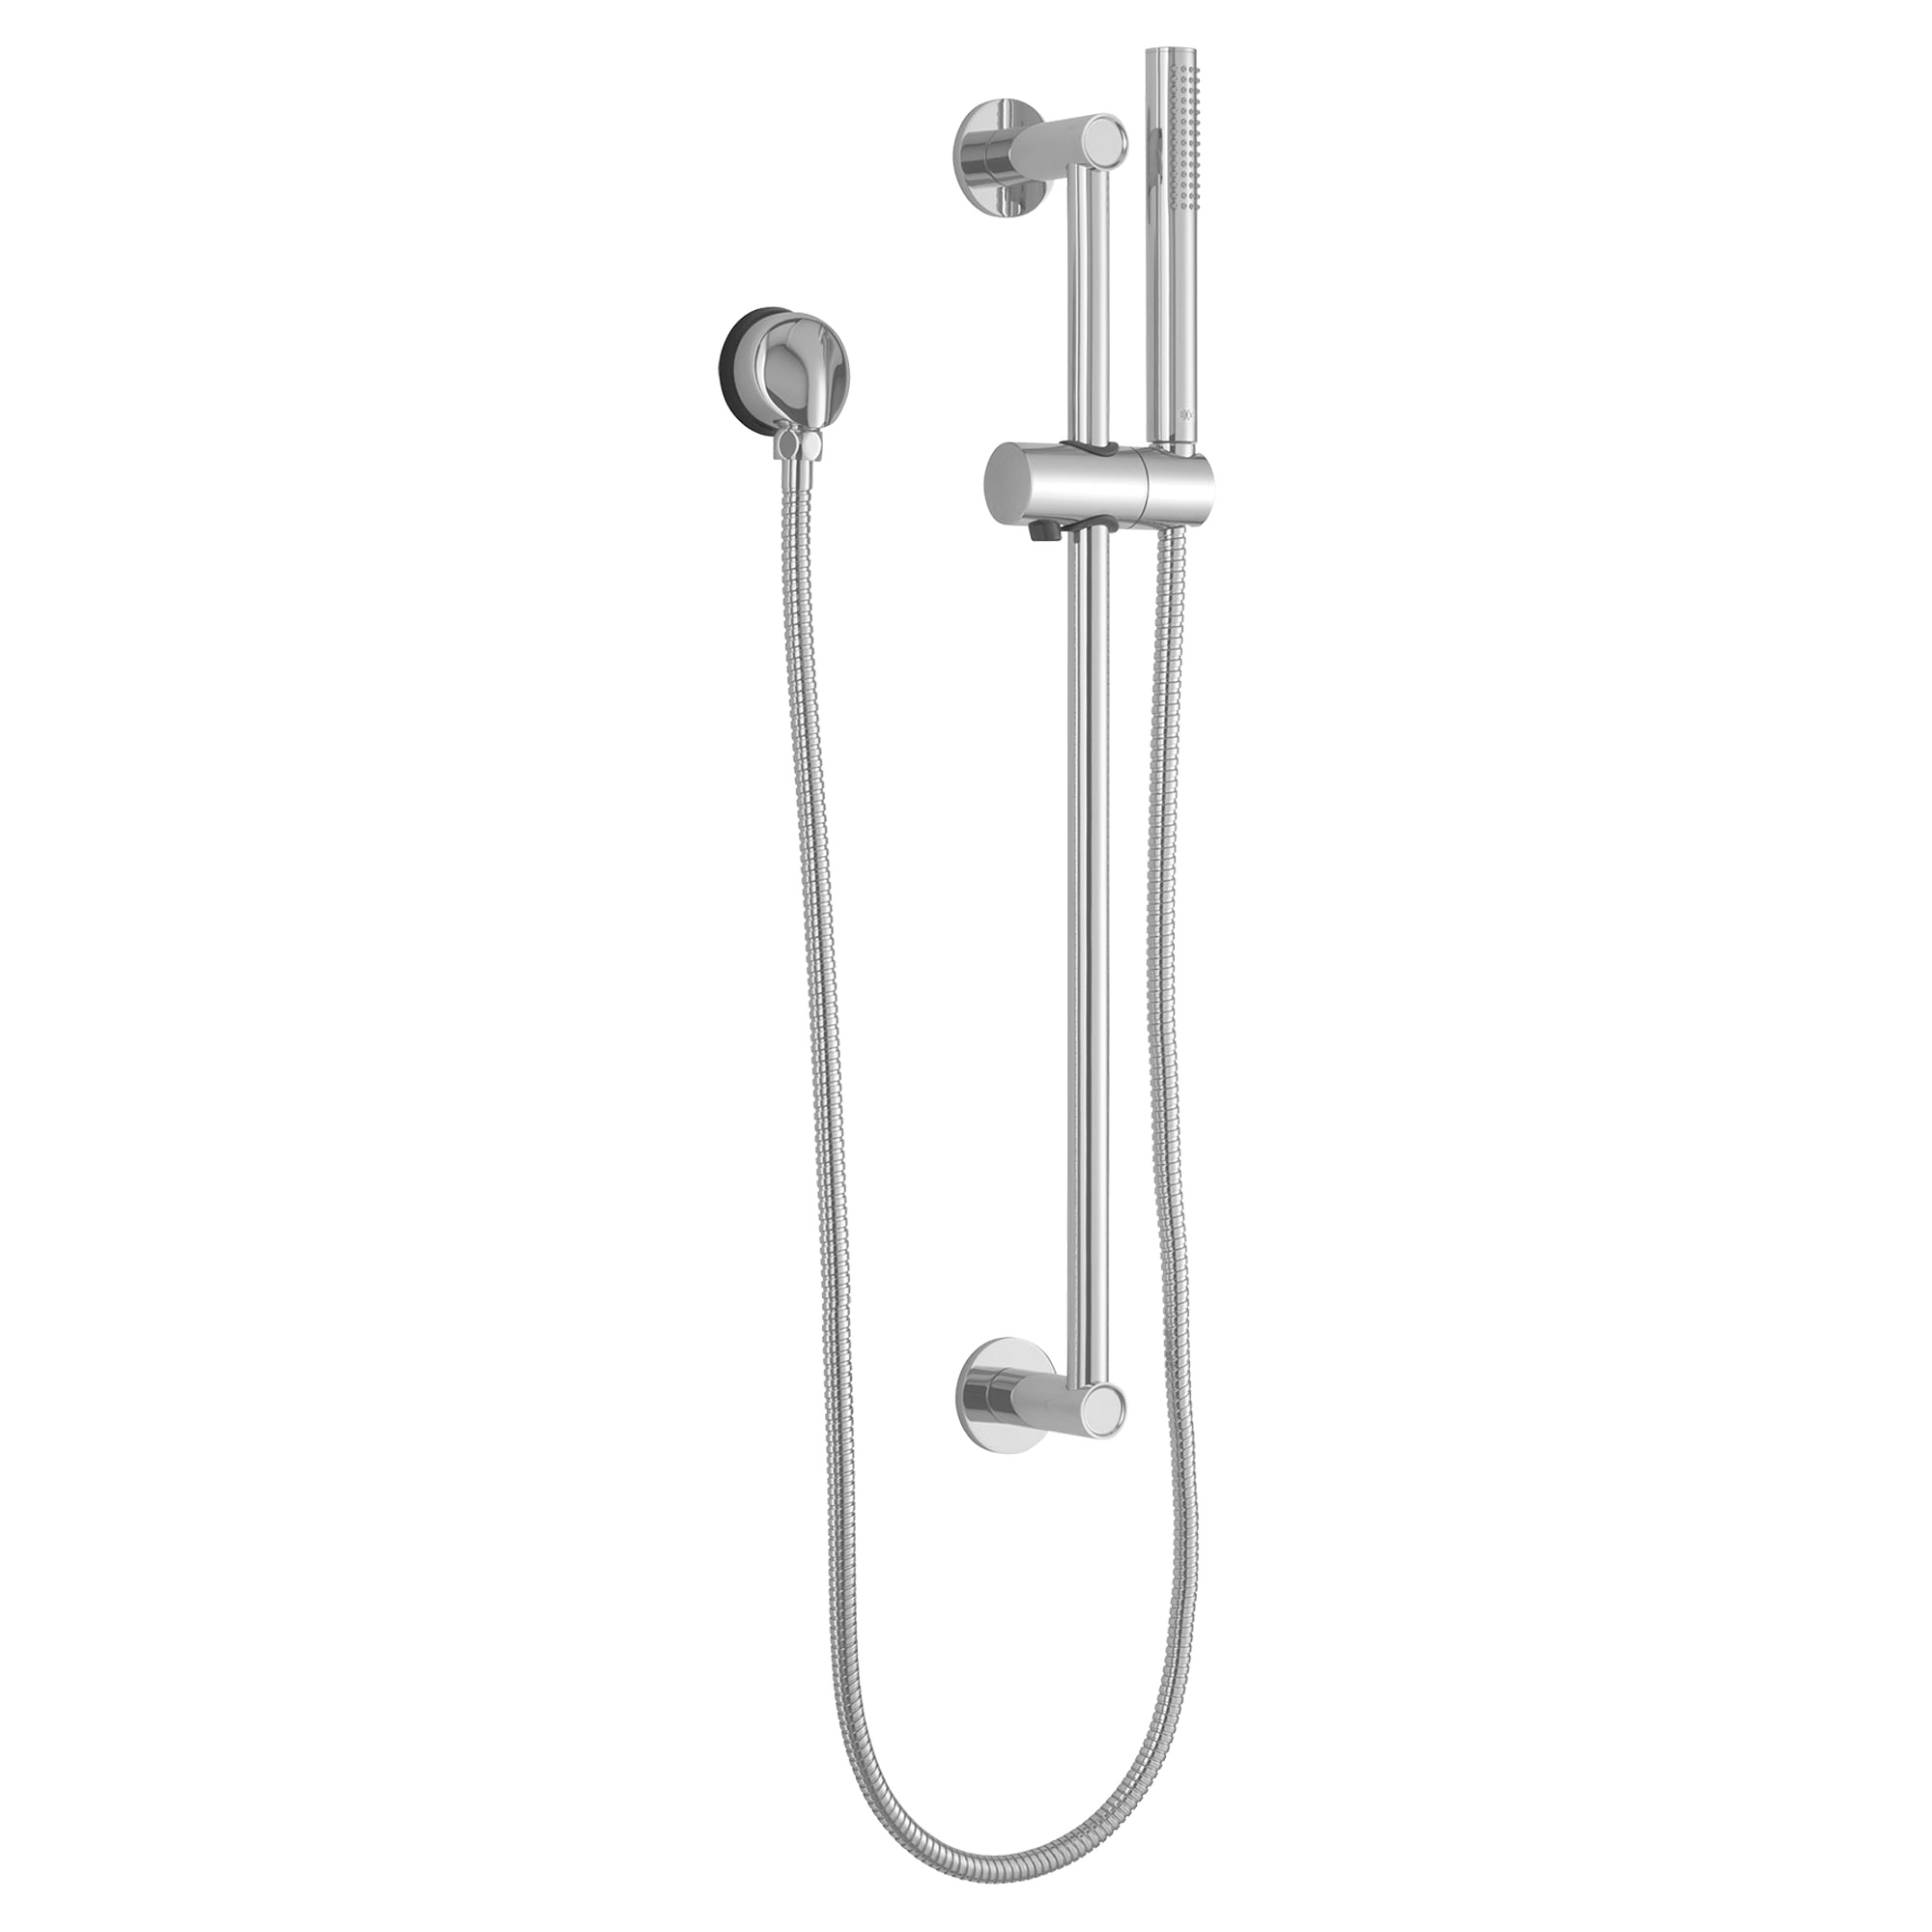 DXV Modulus Personal Shower Set with Hand Shower | DXV